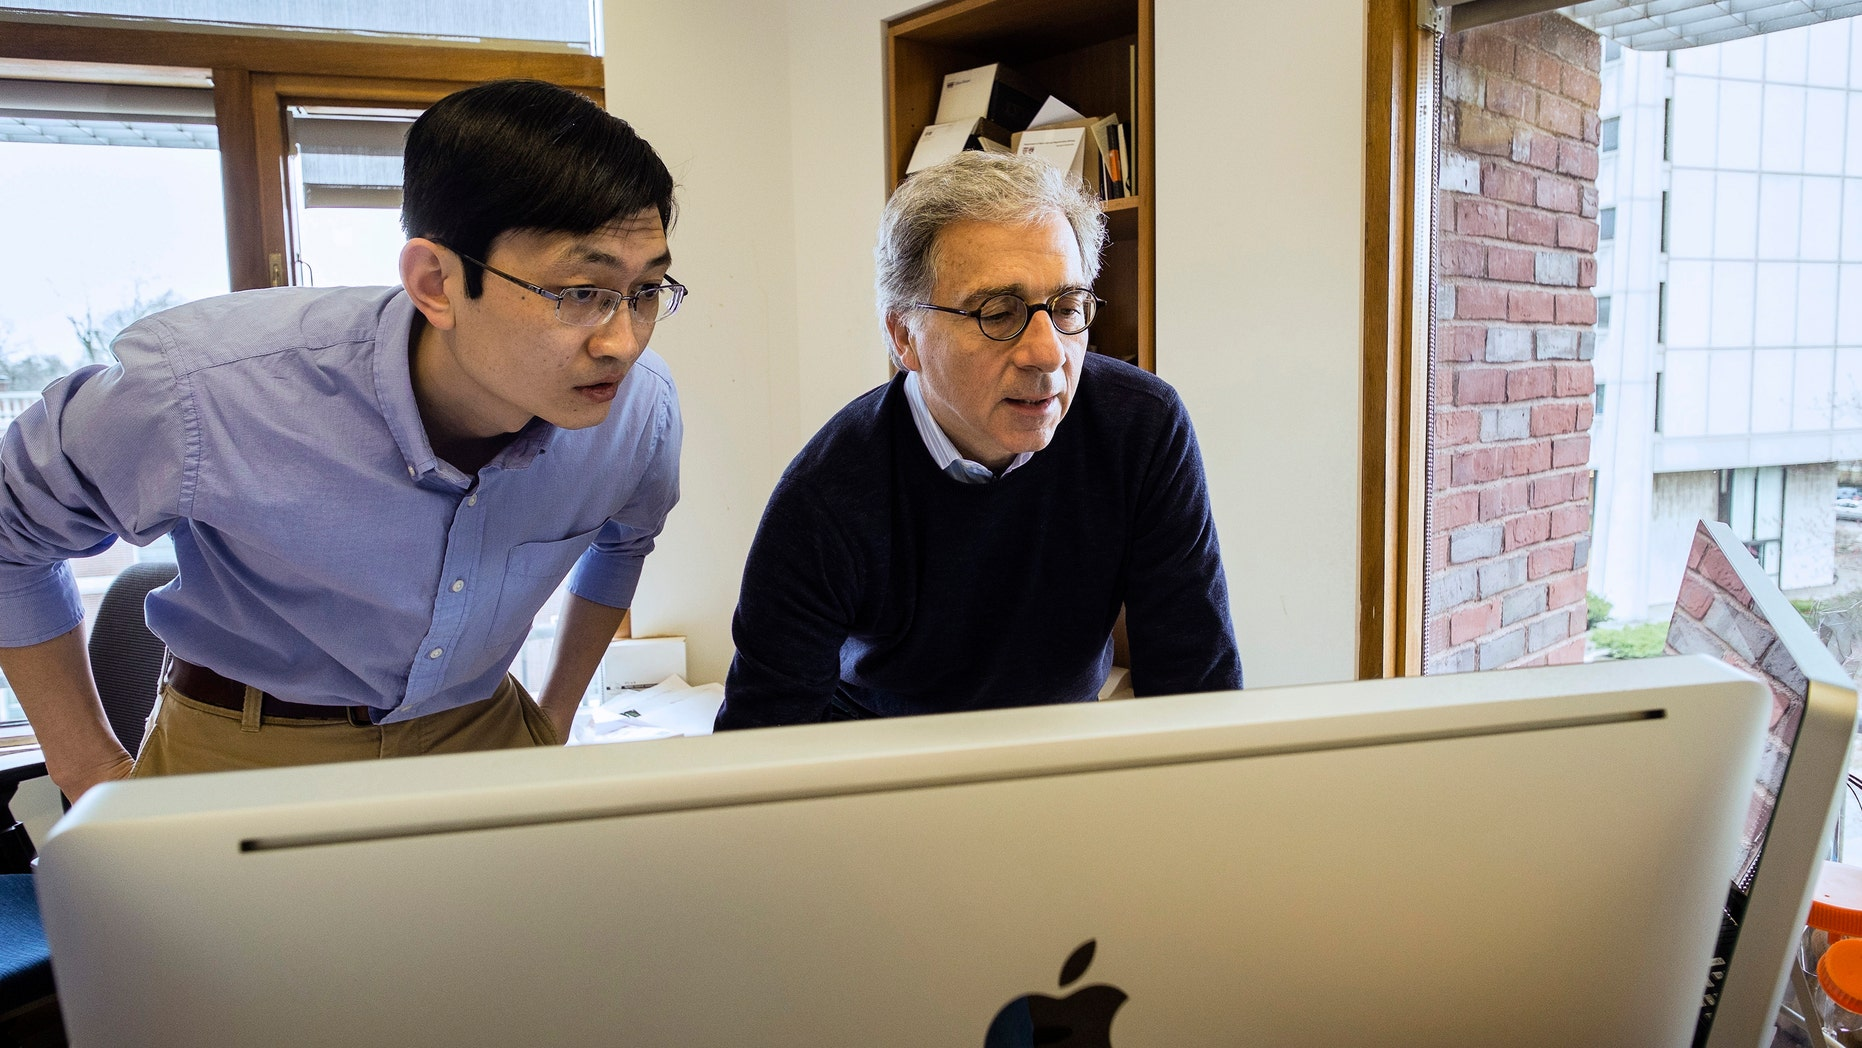 Harvard Stem Cell Institute Co-Director Doug Melton, right, and Peng Yi, a post doctoral fellow in his lab, review data from recent experiments in Melton's lab in Cambridge, Mass. Melton and Yi have identified a hormone that can sharply boost a mouse's supply of cells that make insulin, a discovery that may someday provide a diabetes treatment.